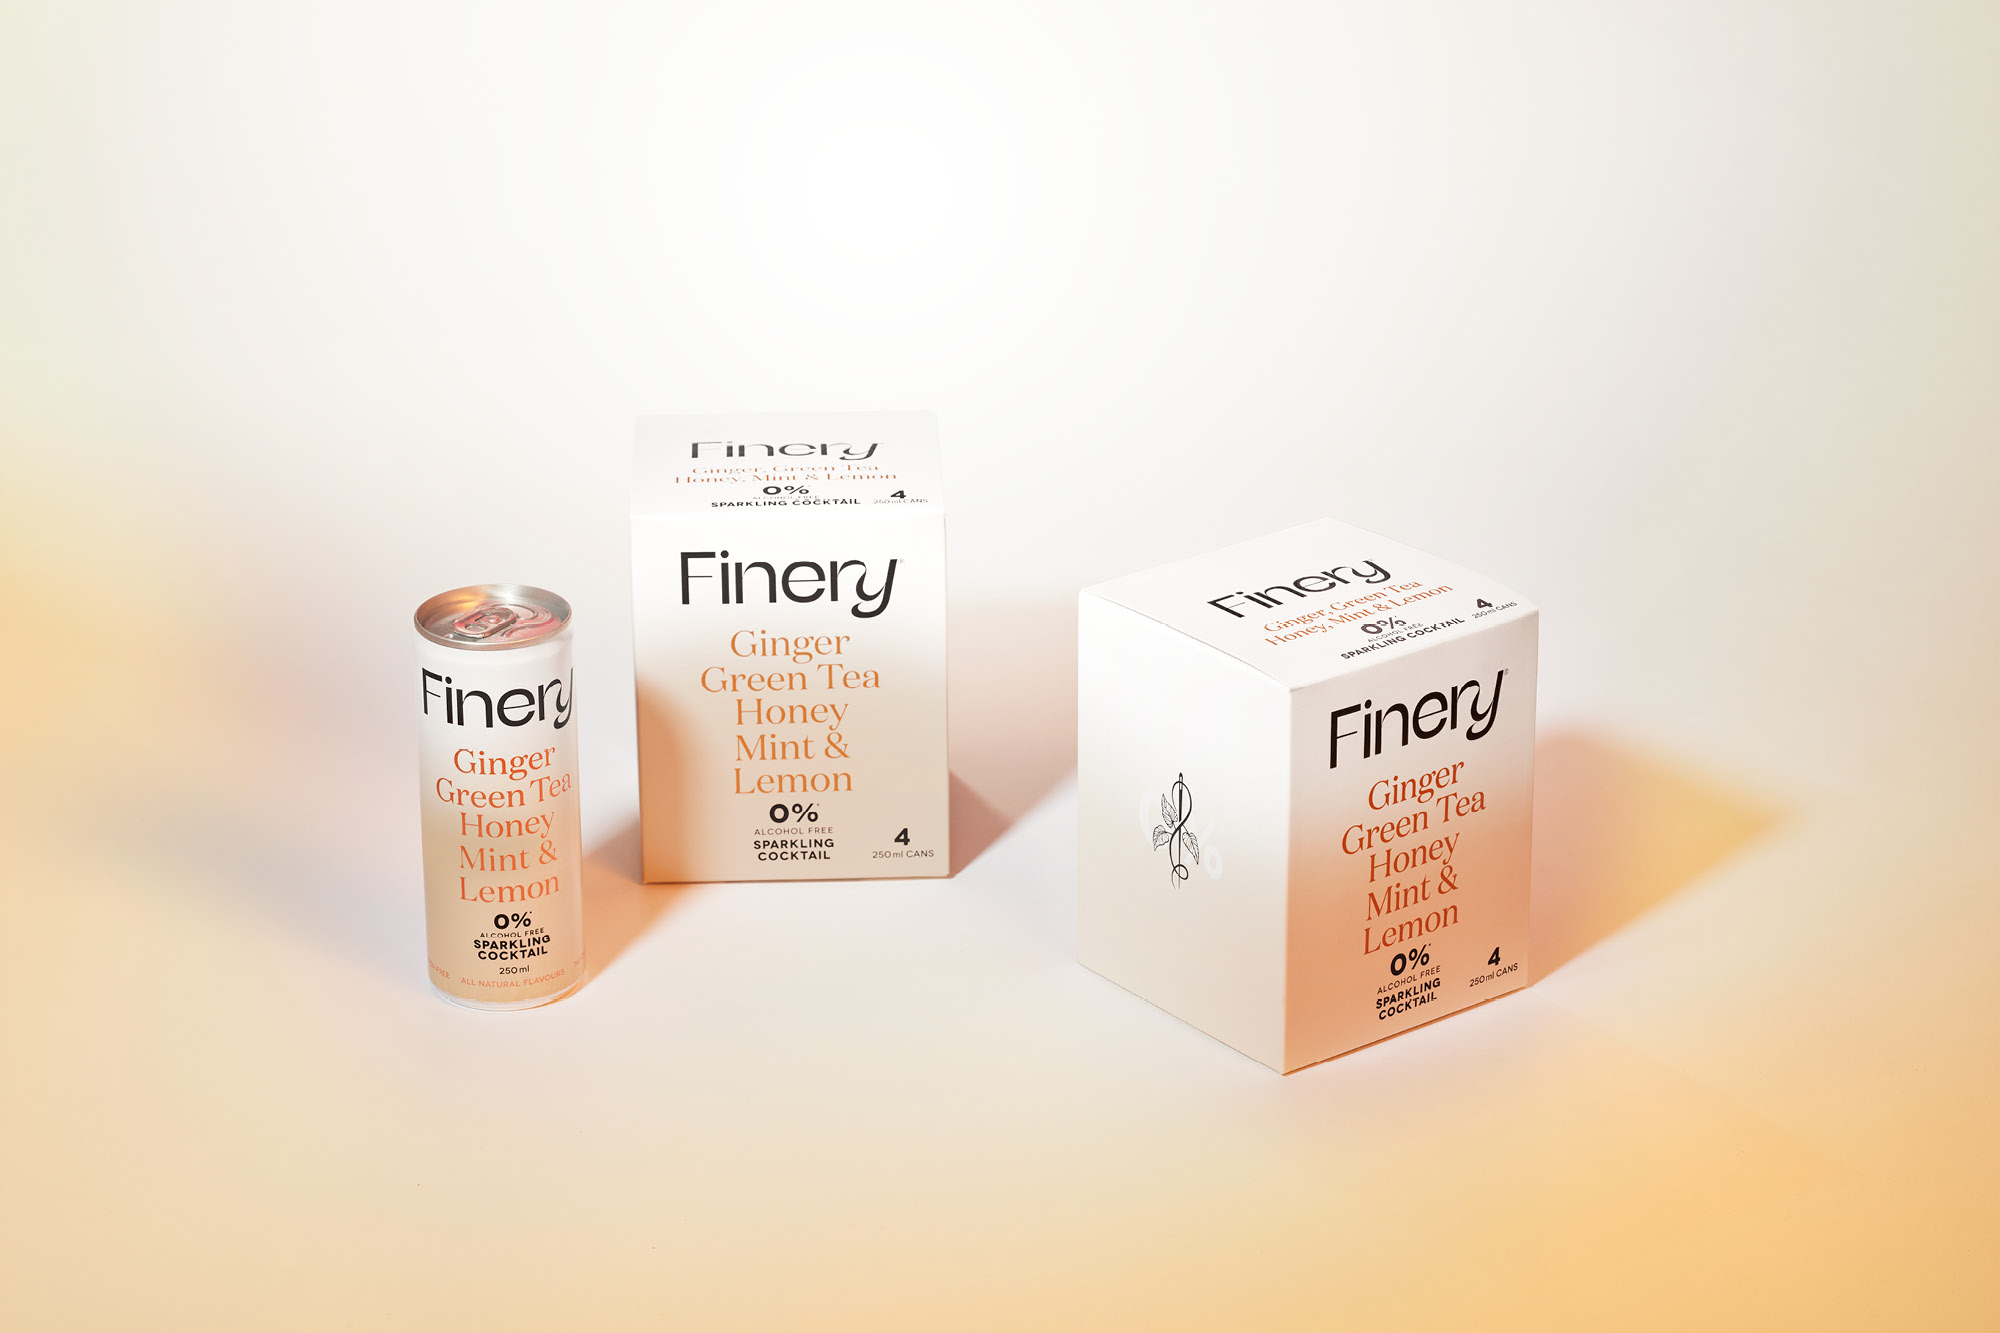 onfire design finery zero percent soda packaging 7